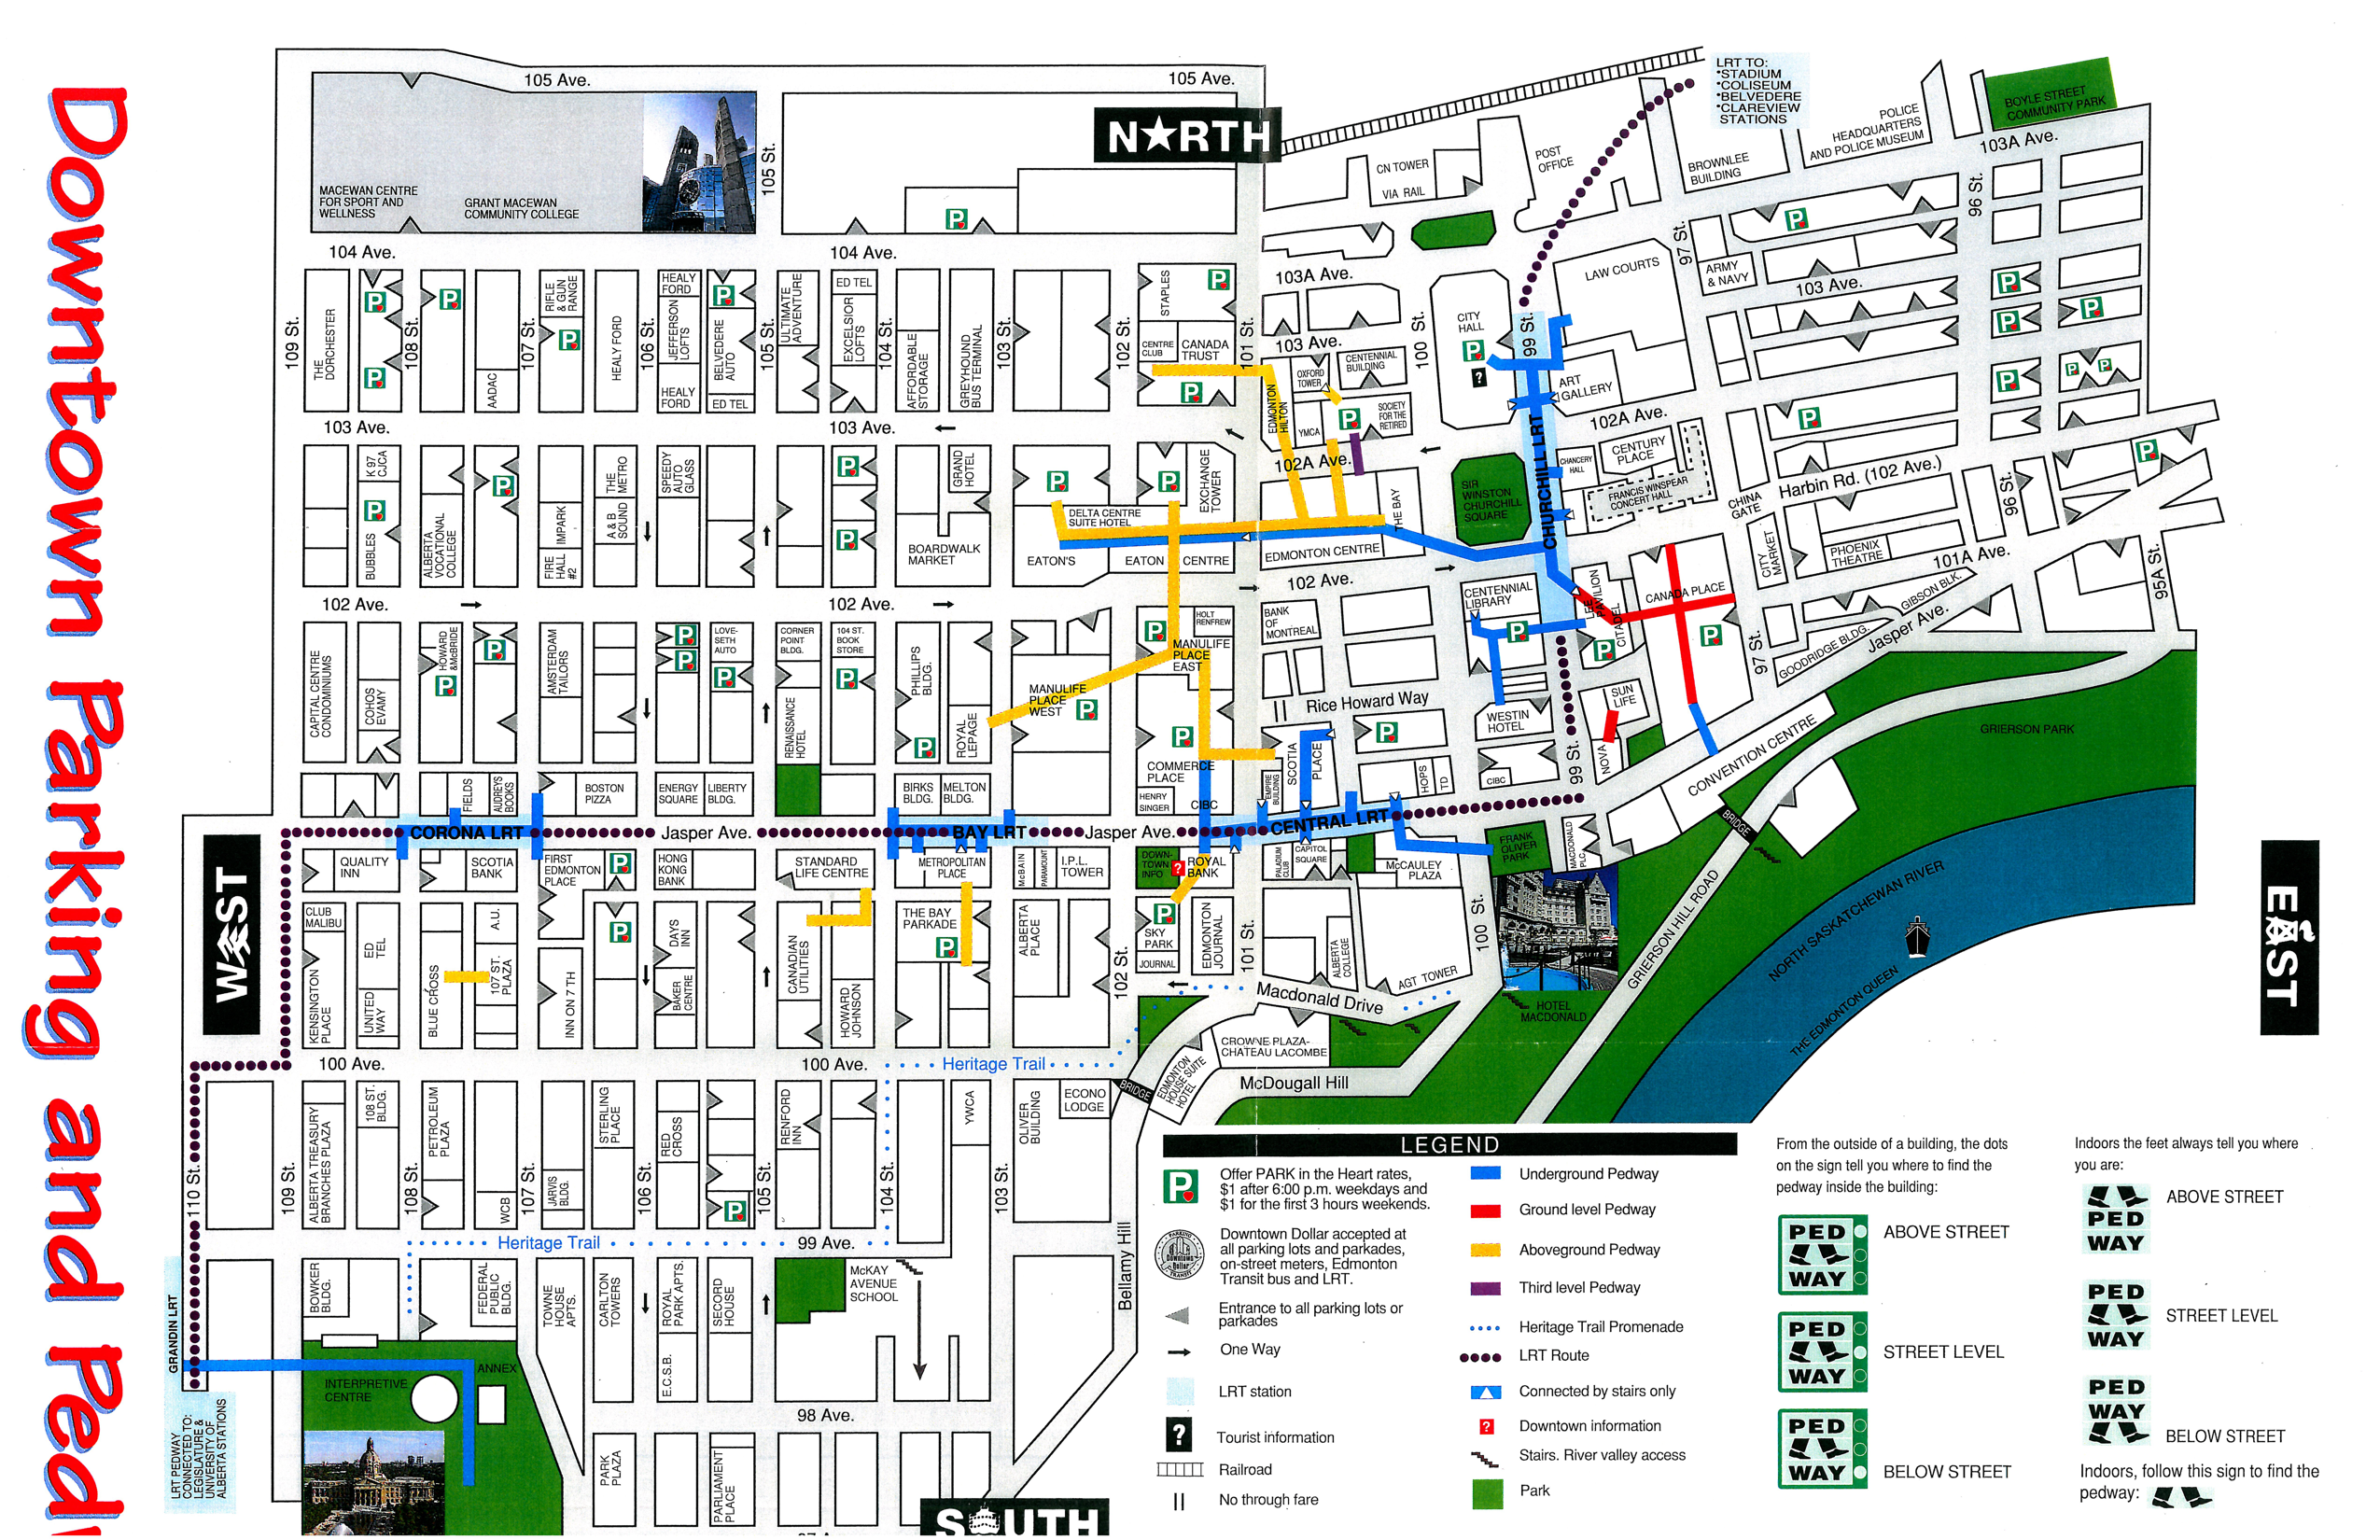 Edmonton Pedway Map 1996 Pedway map | Edmonton City As Museum Project ECAMP